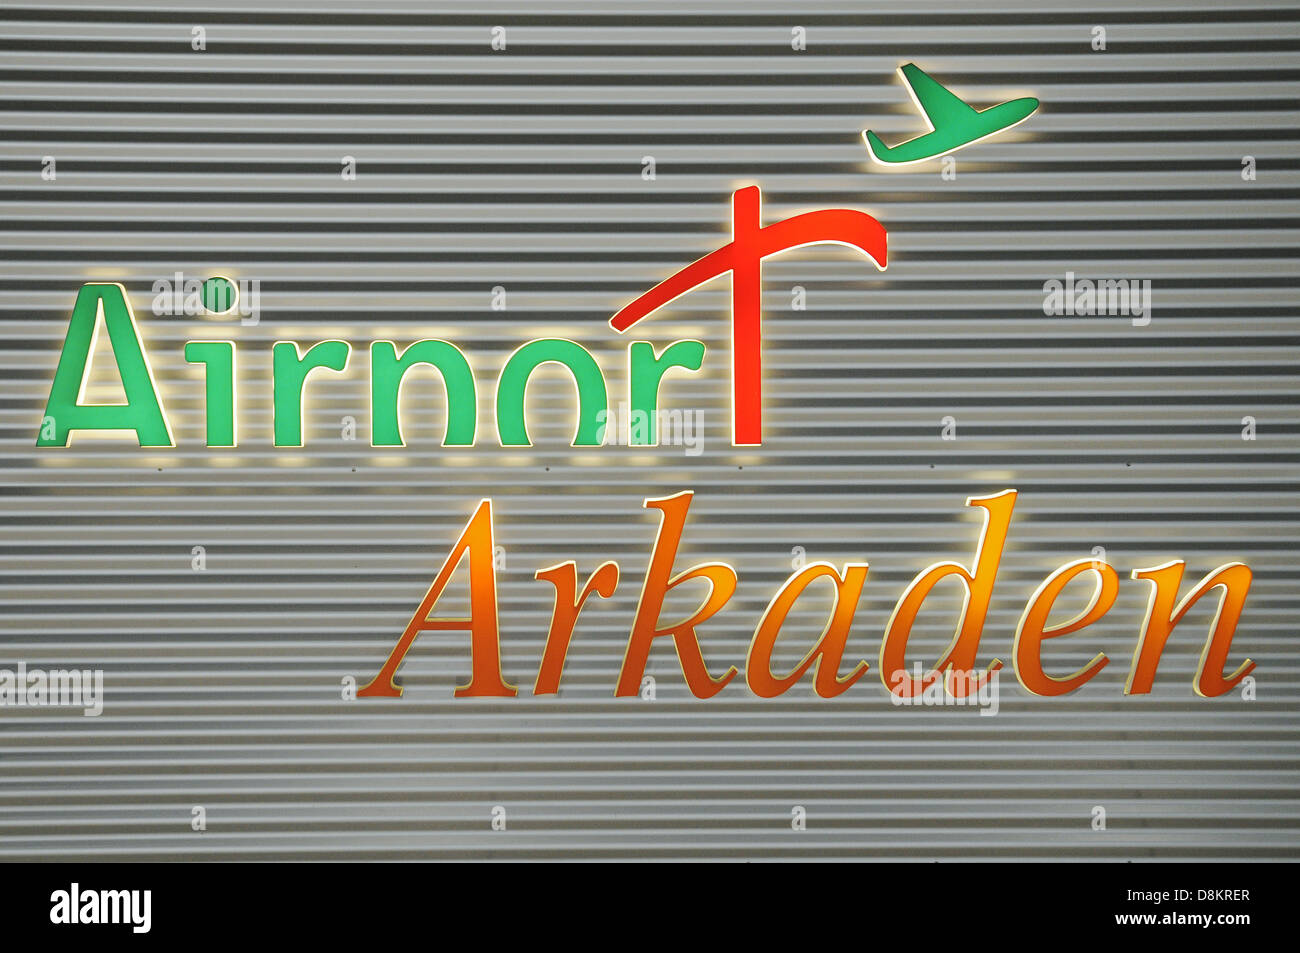 Airport Arkaden - Stock Image